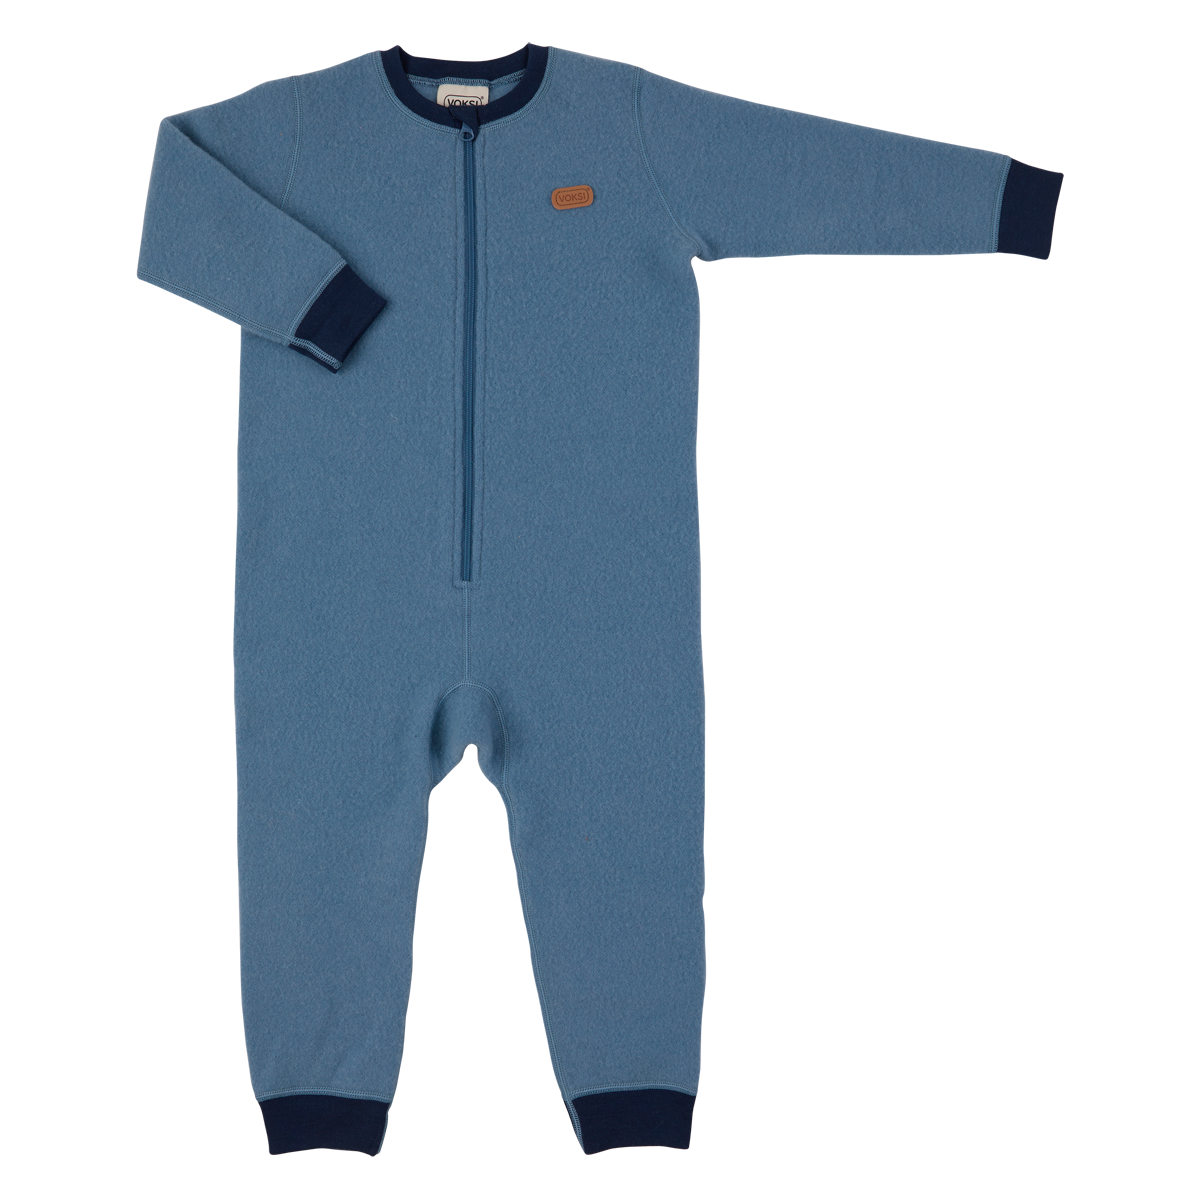 Voksi  meriinovillane jumpsuit  Double Fleece Light Blue